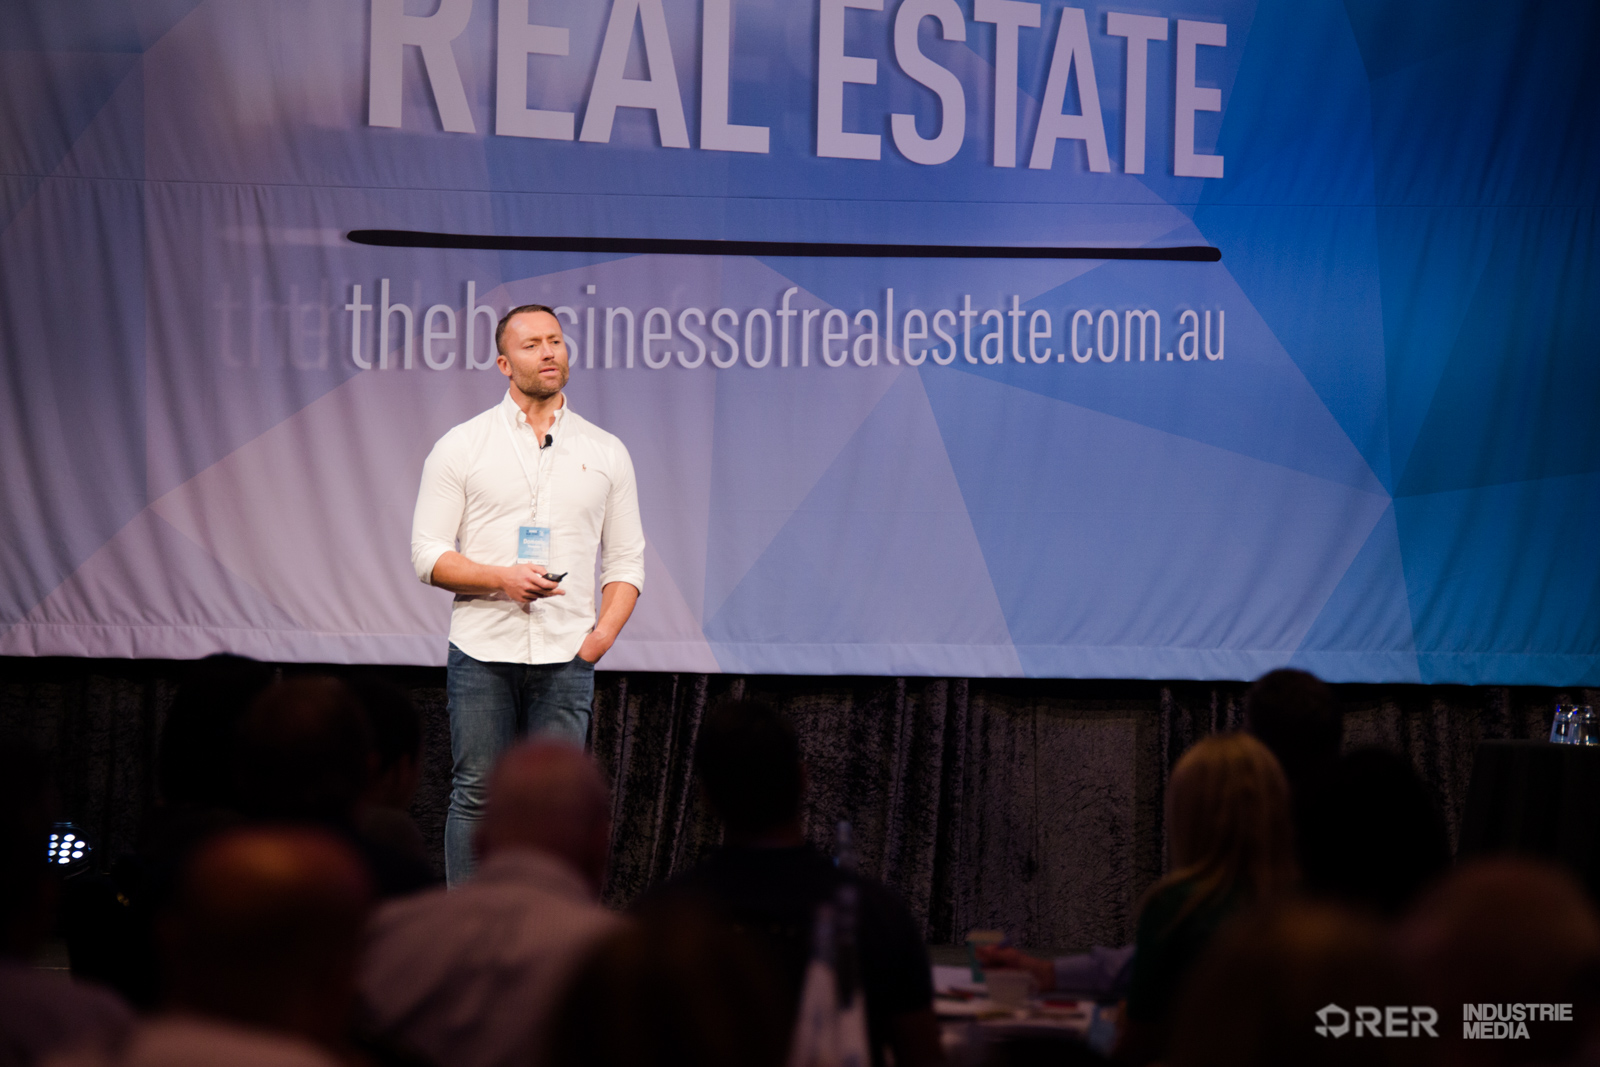 https://www.thebusinessofrealestate.com.au/wp-content/uploads/2016/09/RER_BUSINESS_OF_REAL_ESTATE_DAY_2-48.jpg